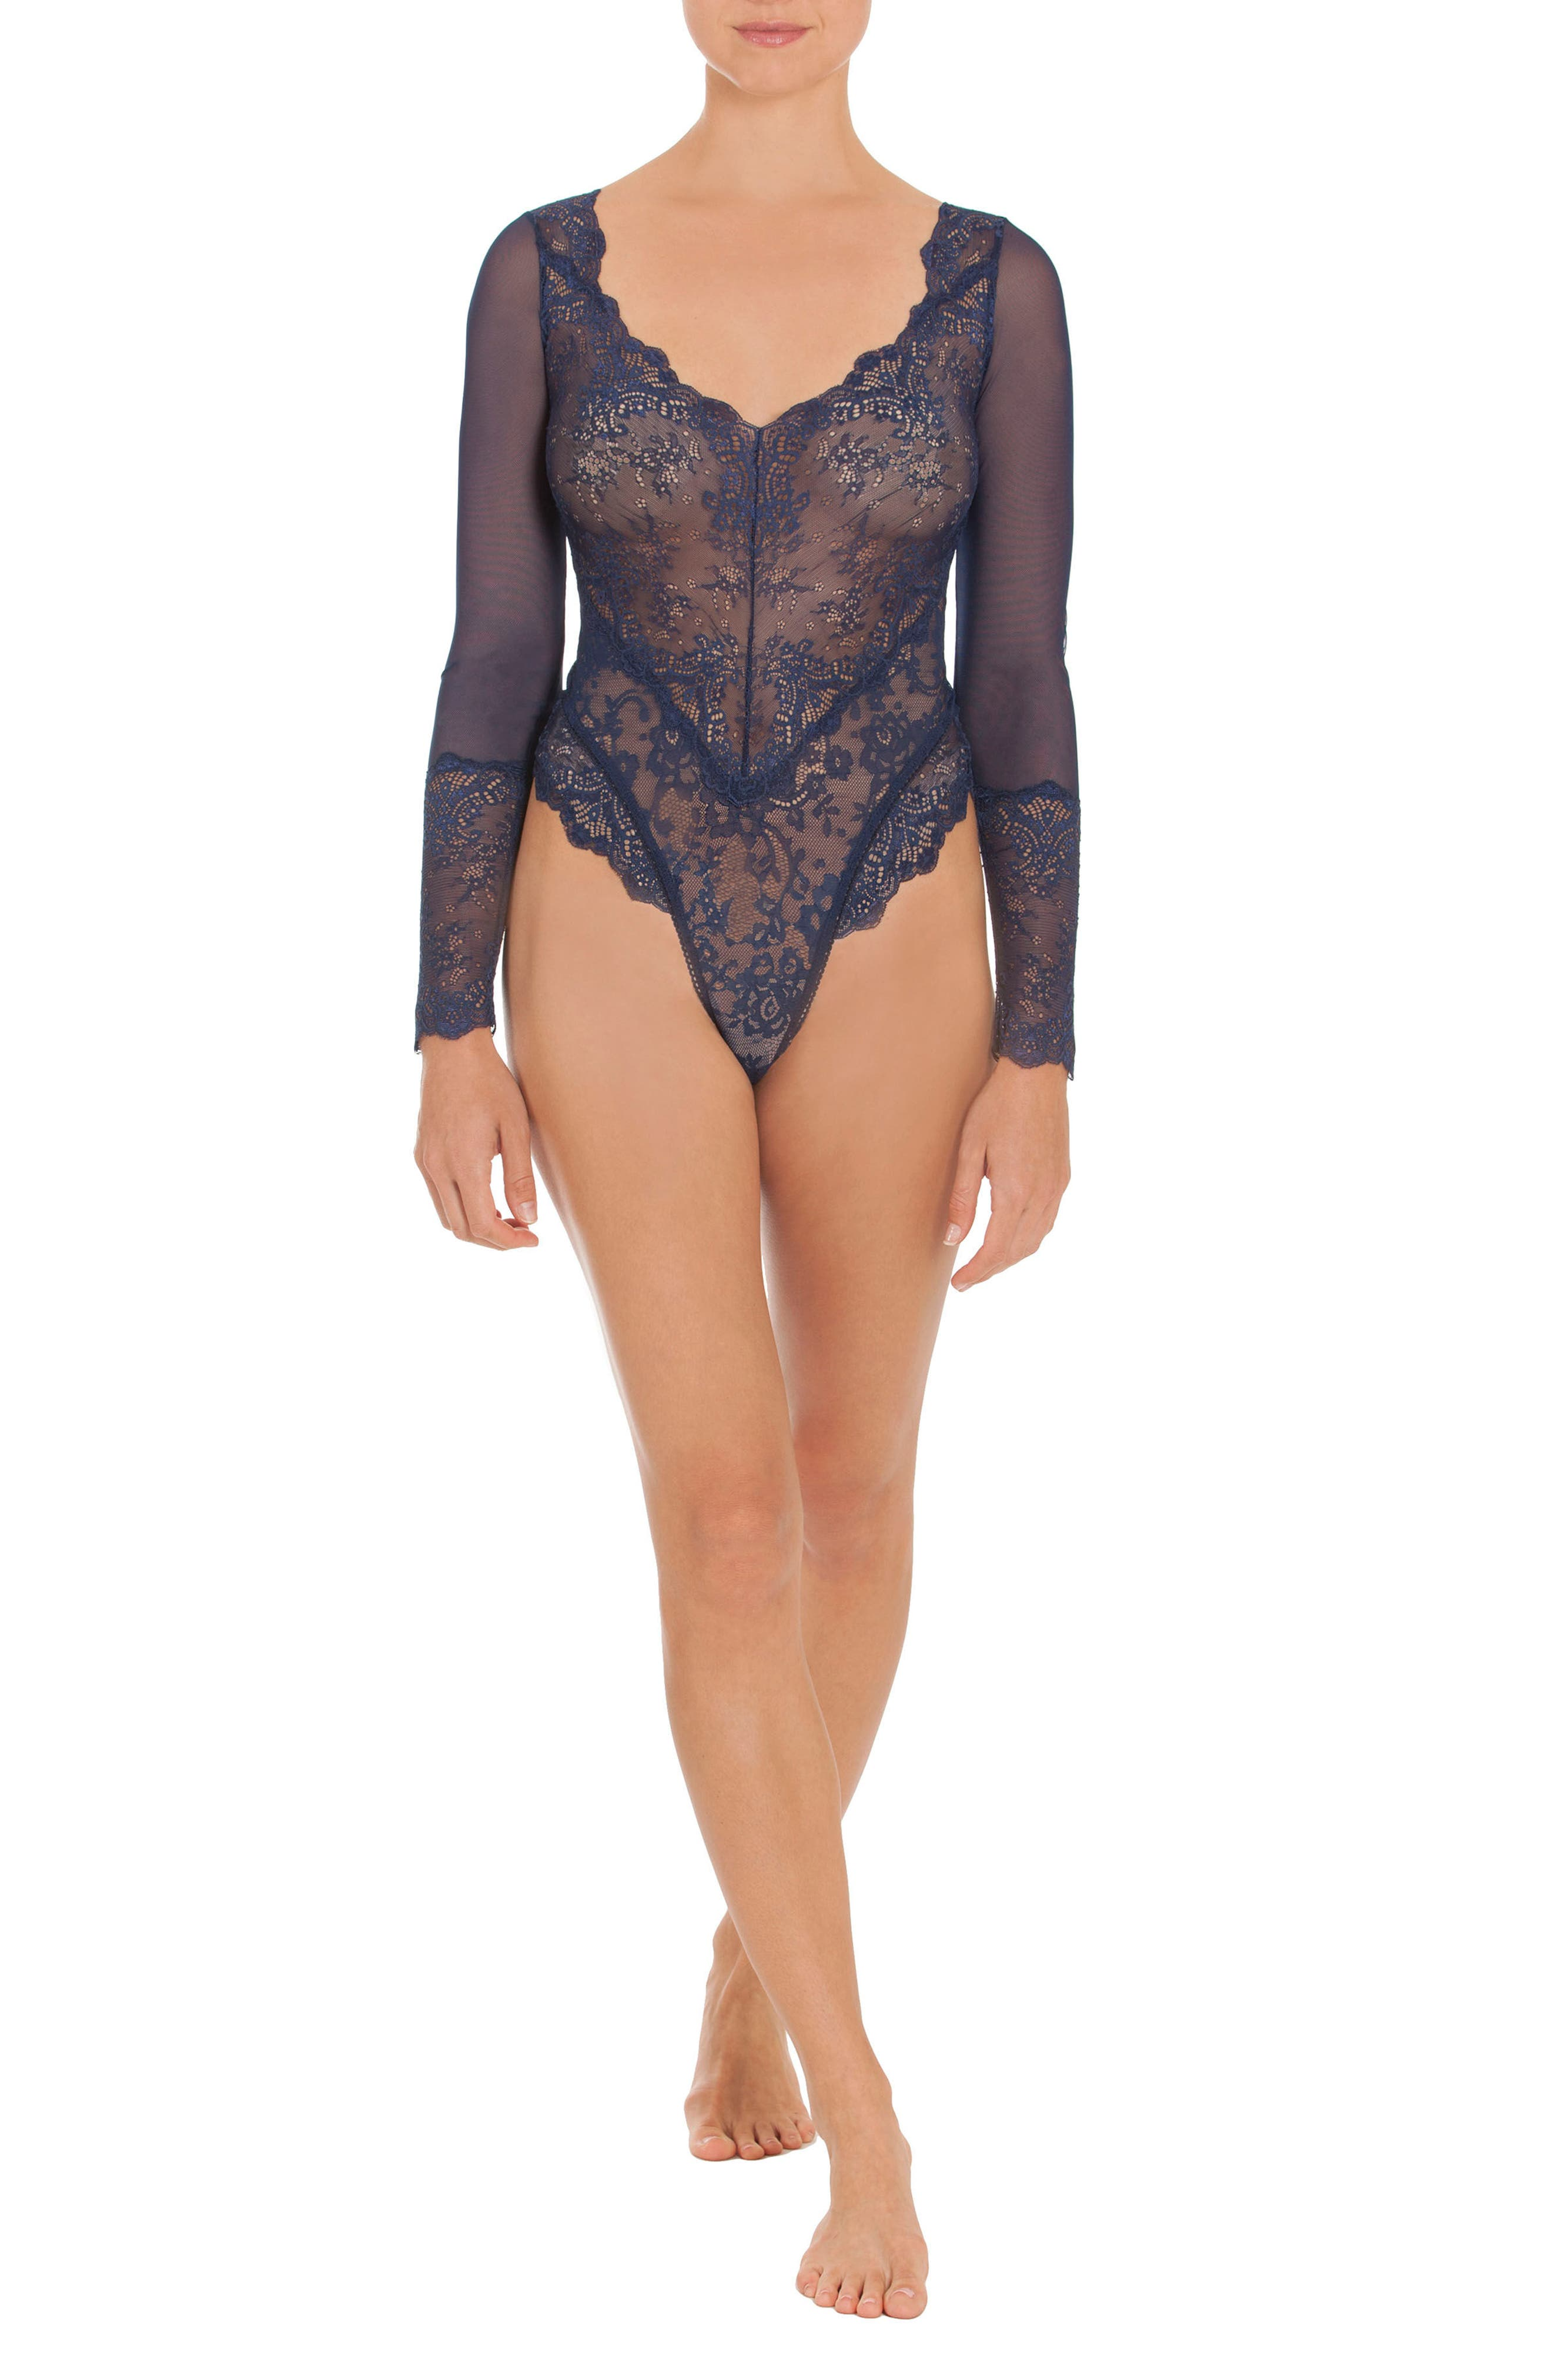 Thong Lace Teddy,                             Alternate thumbnail 5, color,                             400